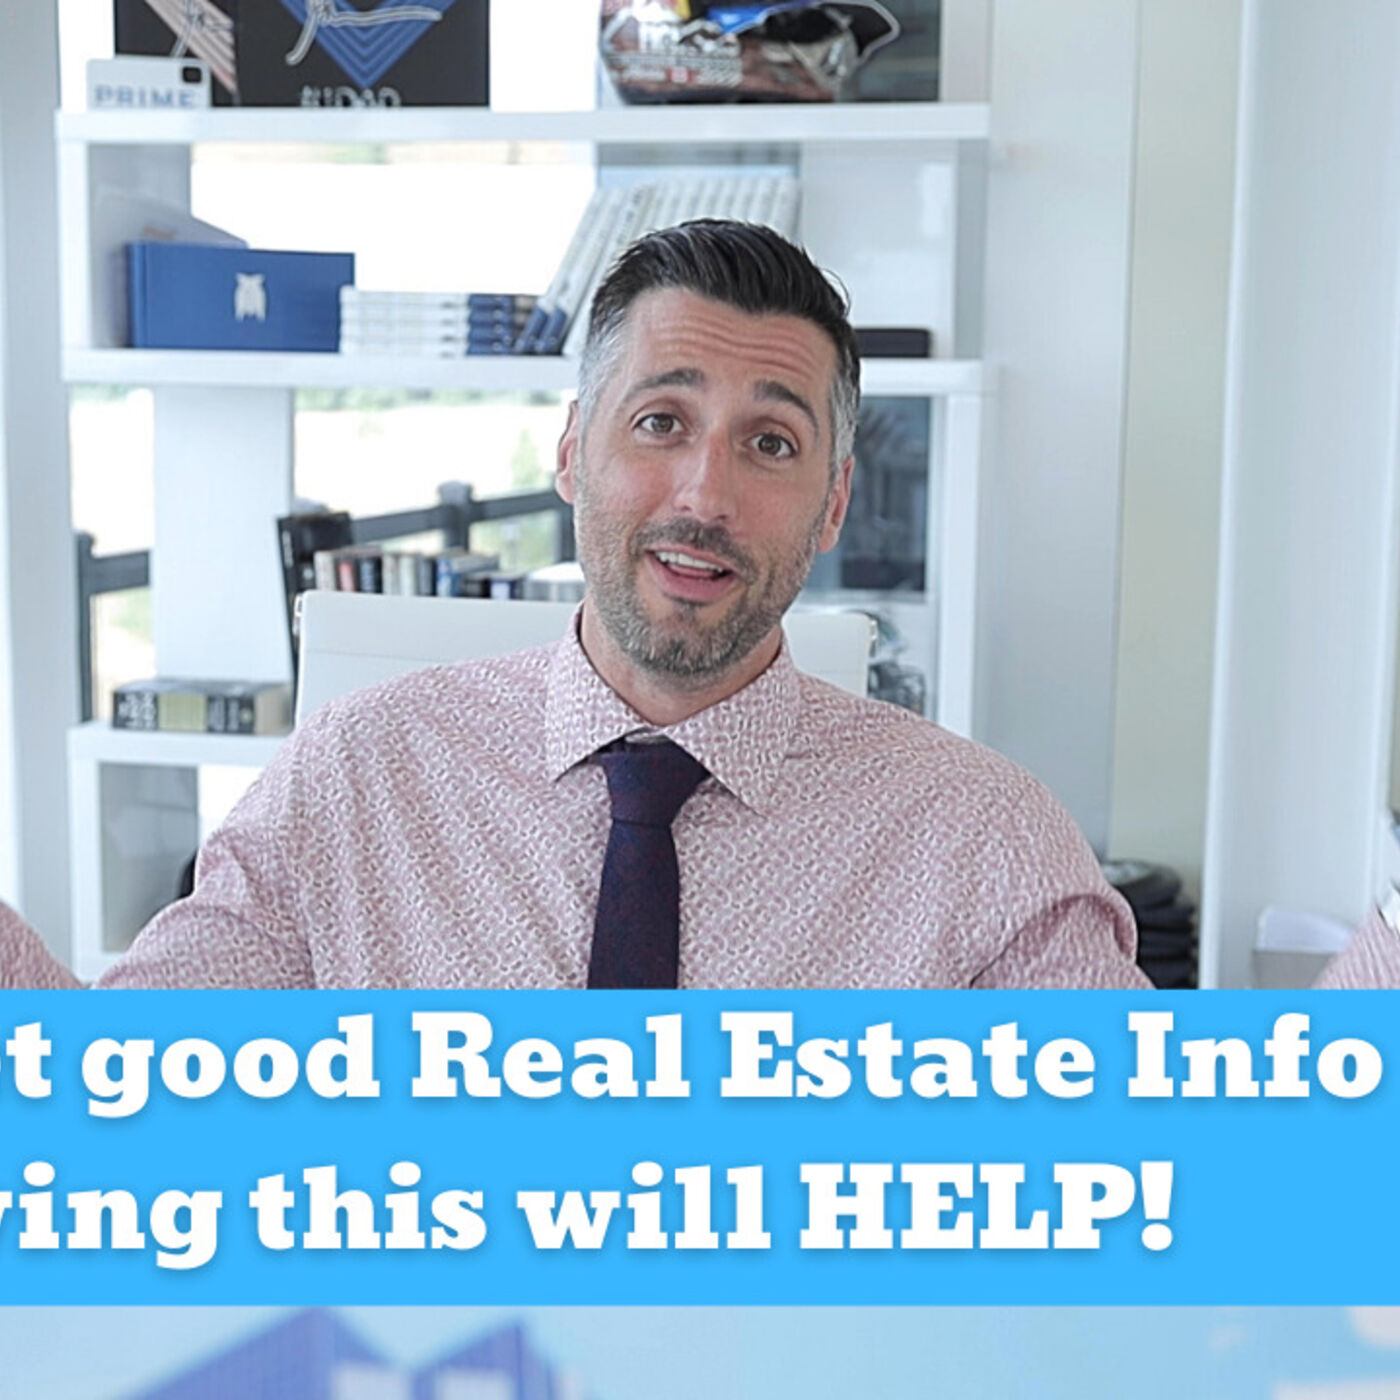 How to get good Real Estate Info : Knowing this will HELP!